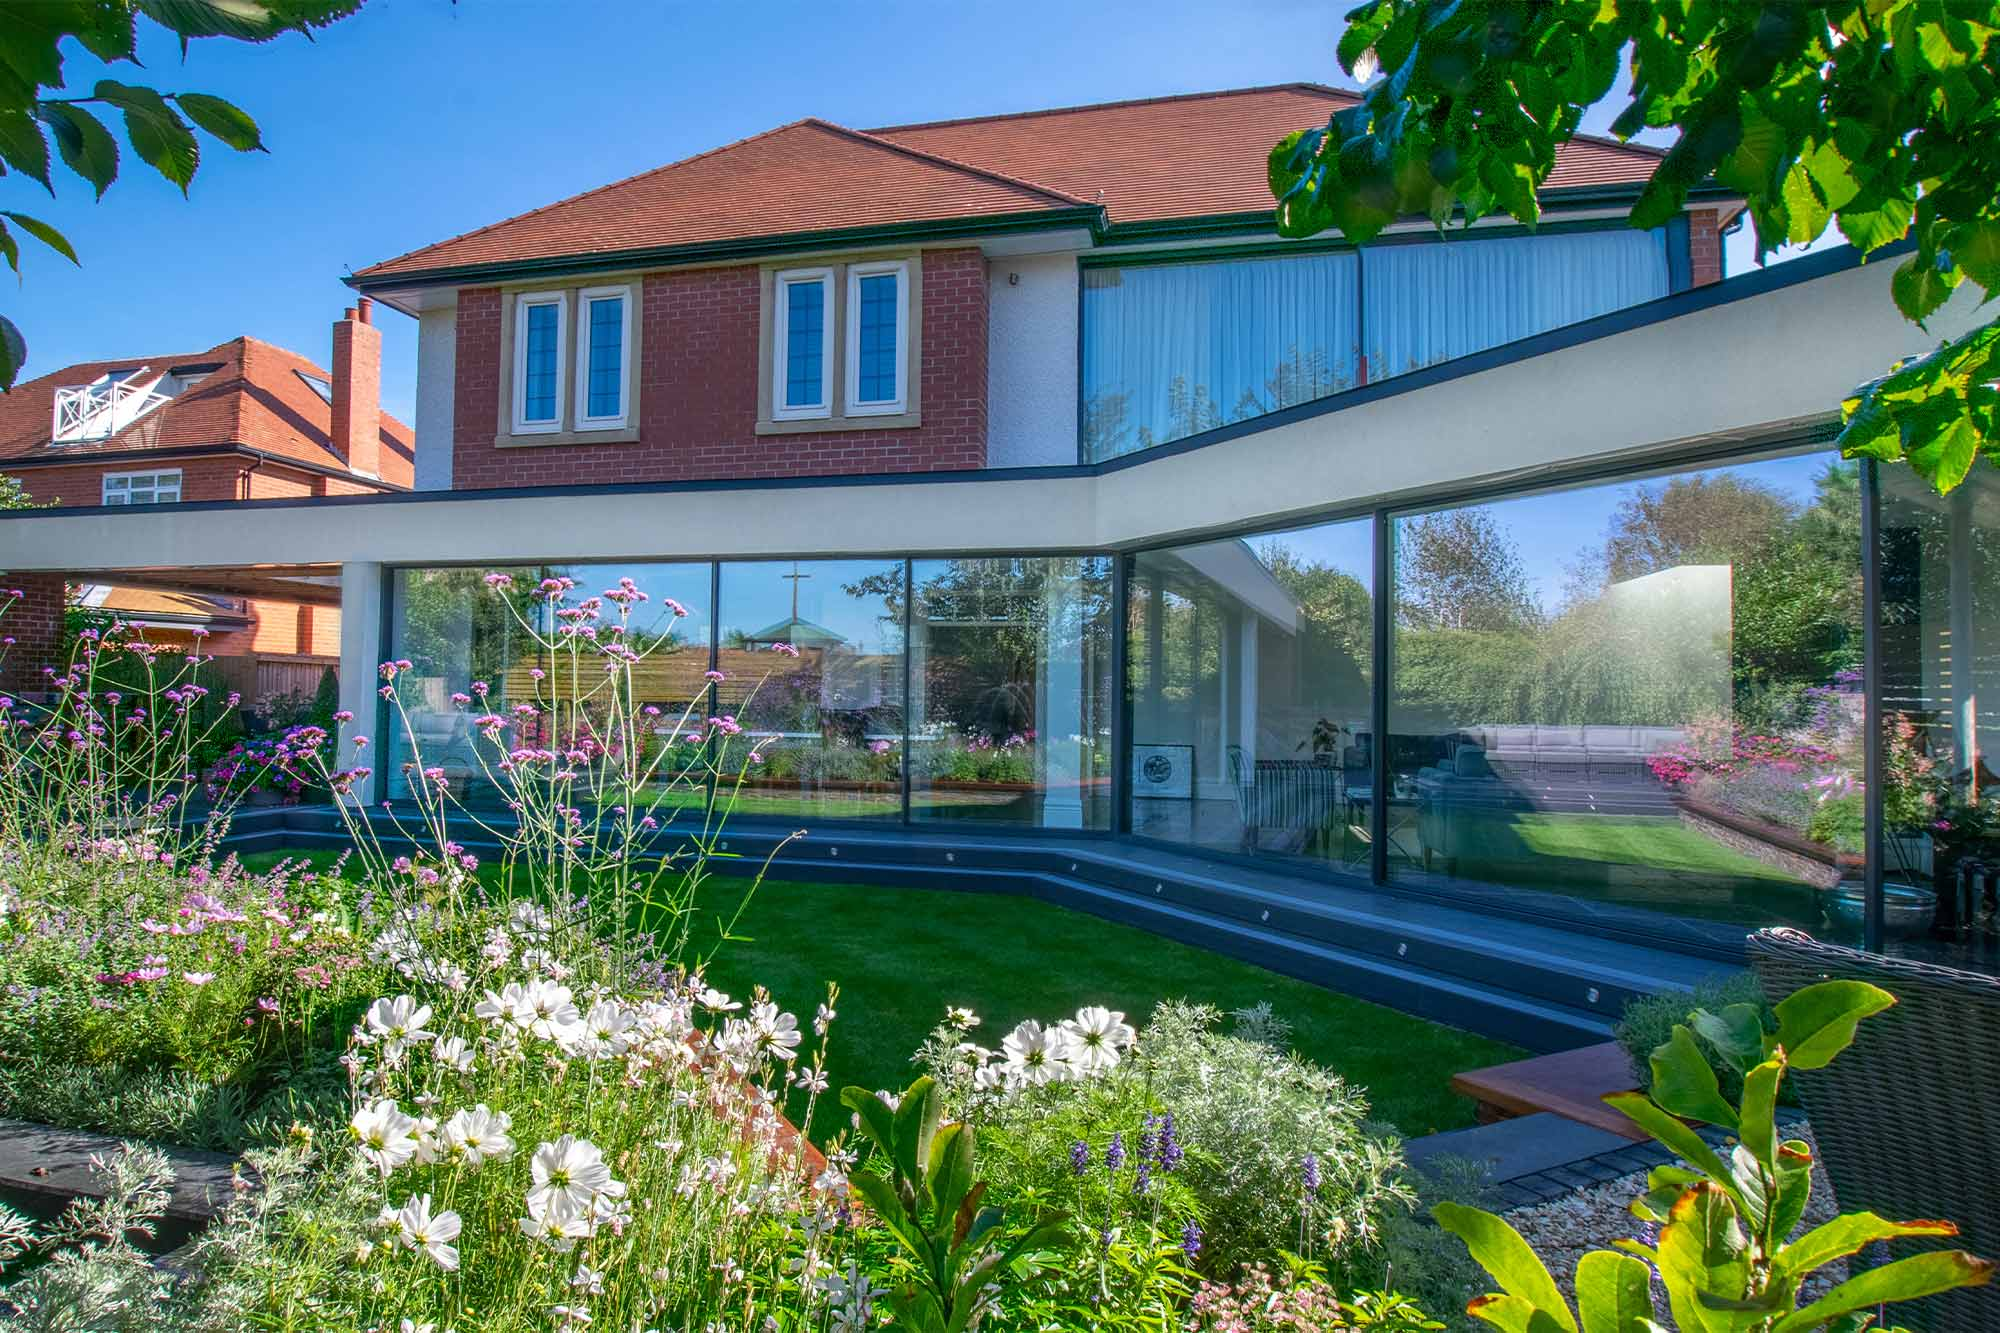 House re-model and contemporary extension architectural design featuring large sliding slimline glass doors in Lytham St'Annes, Lancashire